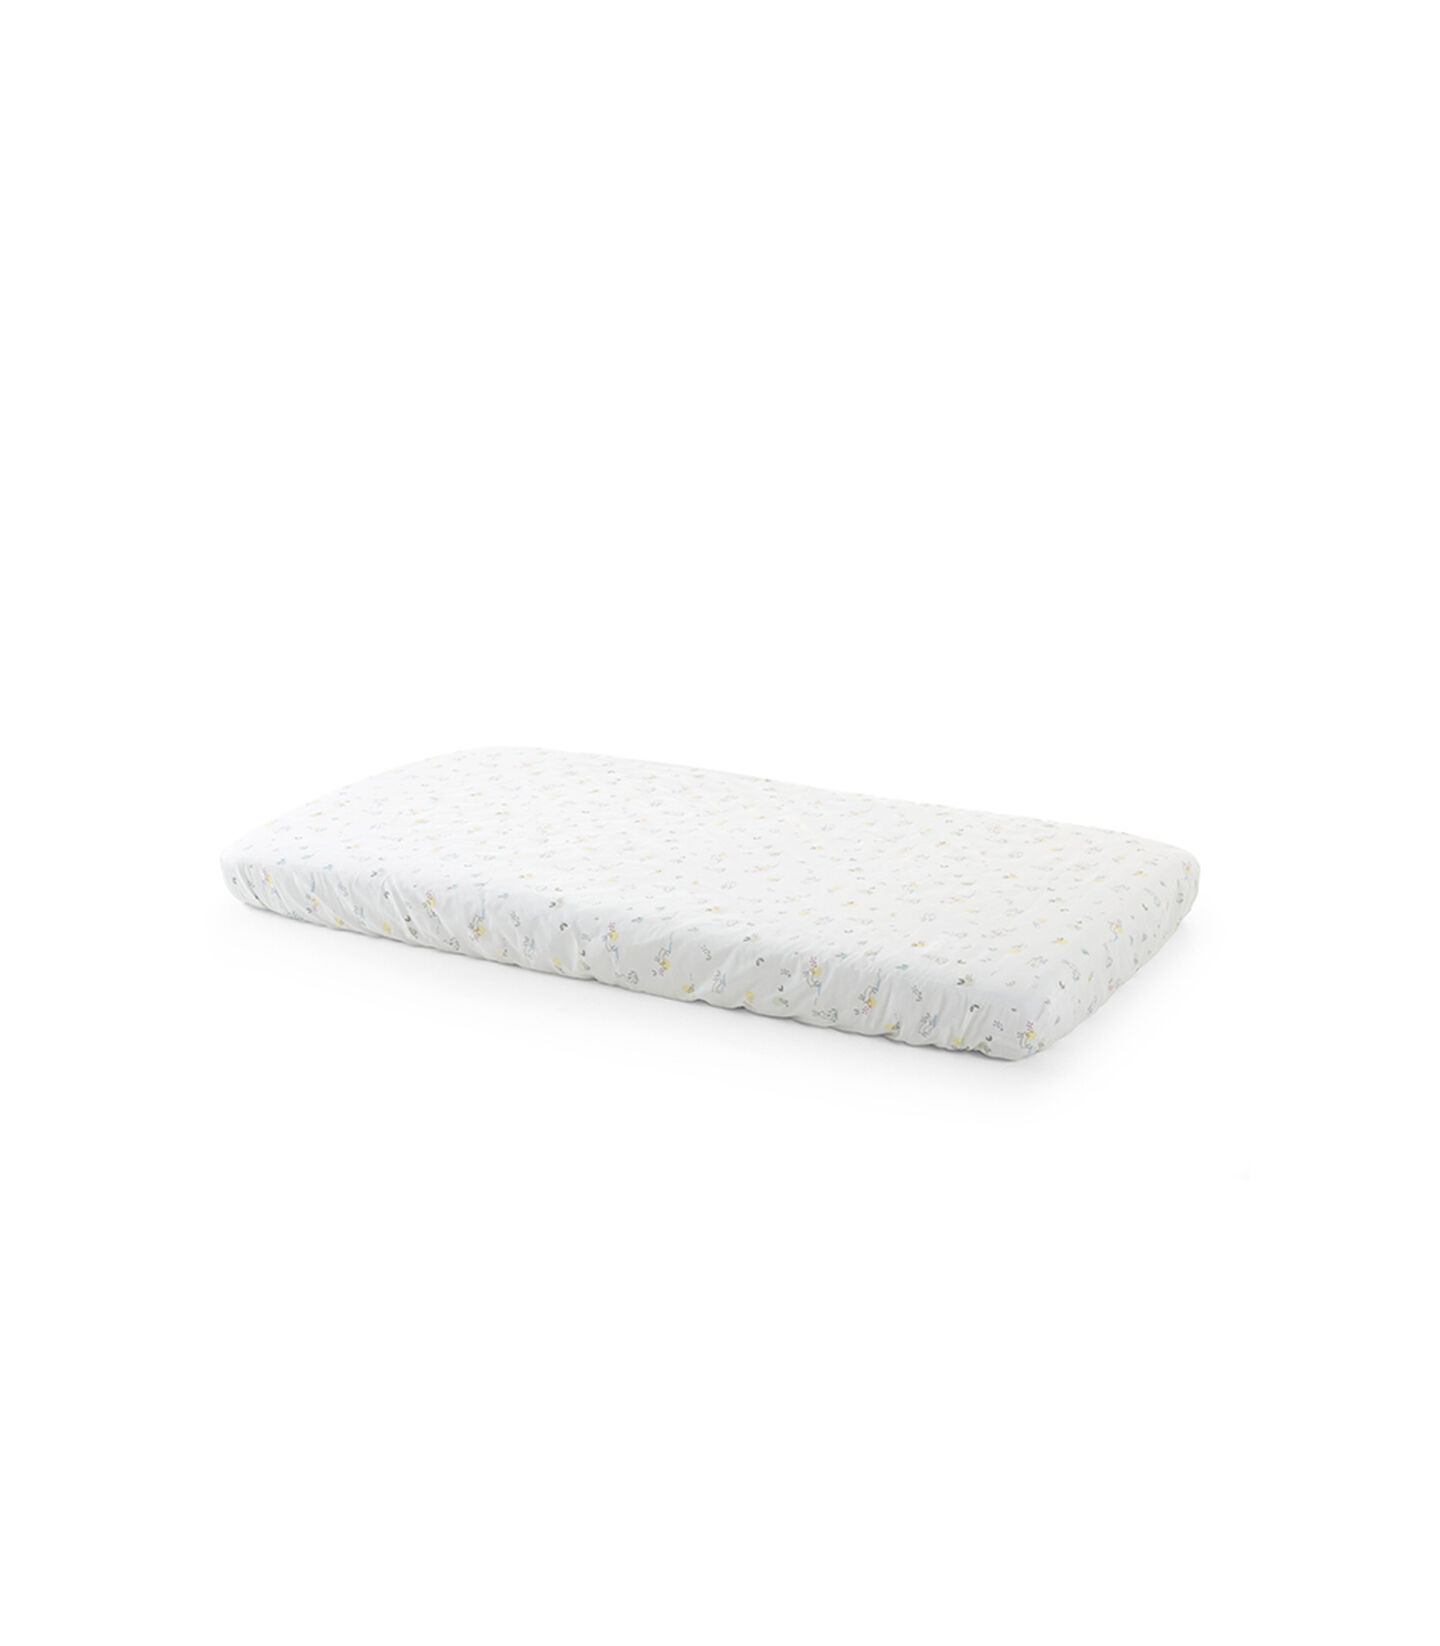 Stokke® Home™ Bed hoeslaken 2st - Soft Rabbit, Soft Rabbit, mainview view 1